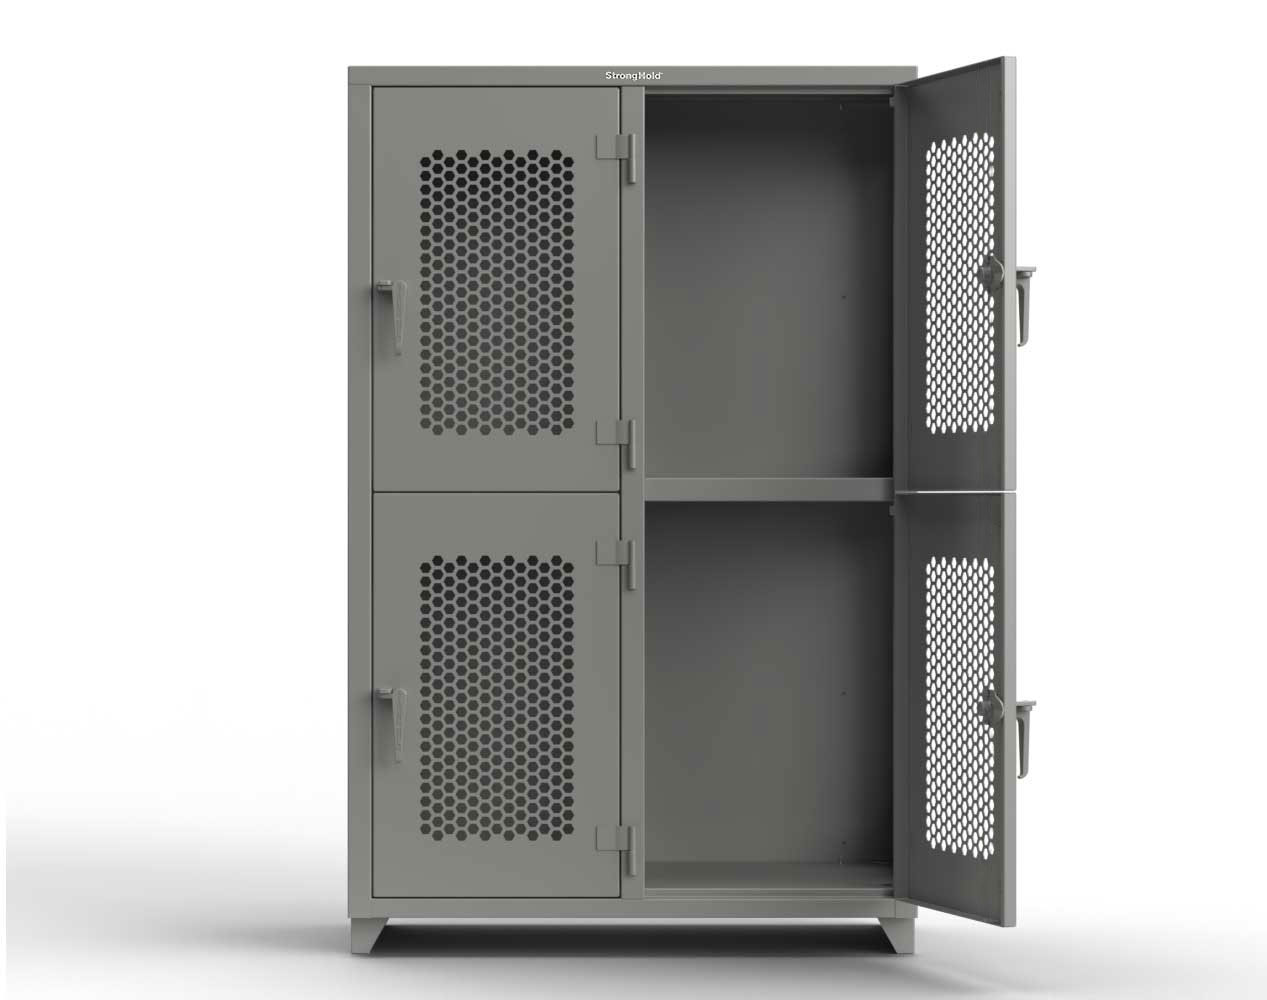 Extra Heavy Duty 14 GA Double-Tier Ventilated Locker, 4 Compartments – 48 in. W x 24 in. D x 75 in. H